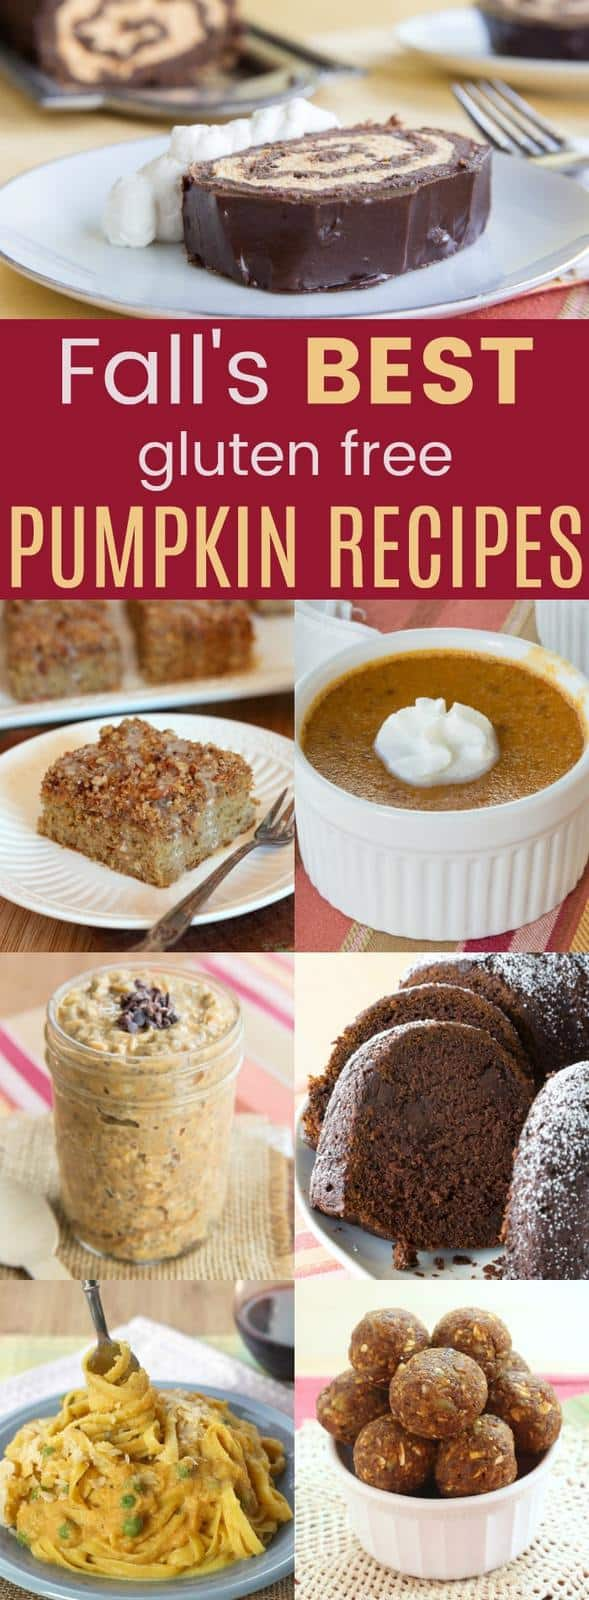 Fall's Best Gluten Free Pumpkin Recipes - there's real pumpkin in each pumpkin recipe for breakfast, dinner, and of course, dessert! Get your pumpkin spice fix for autumn!